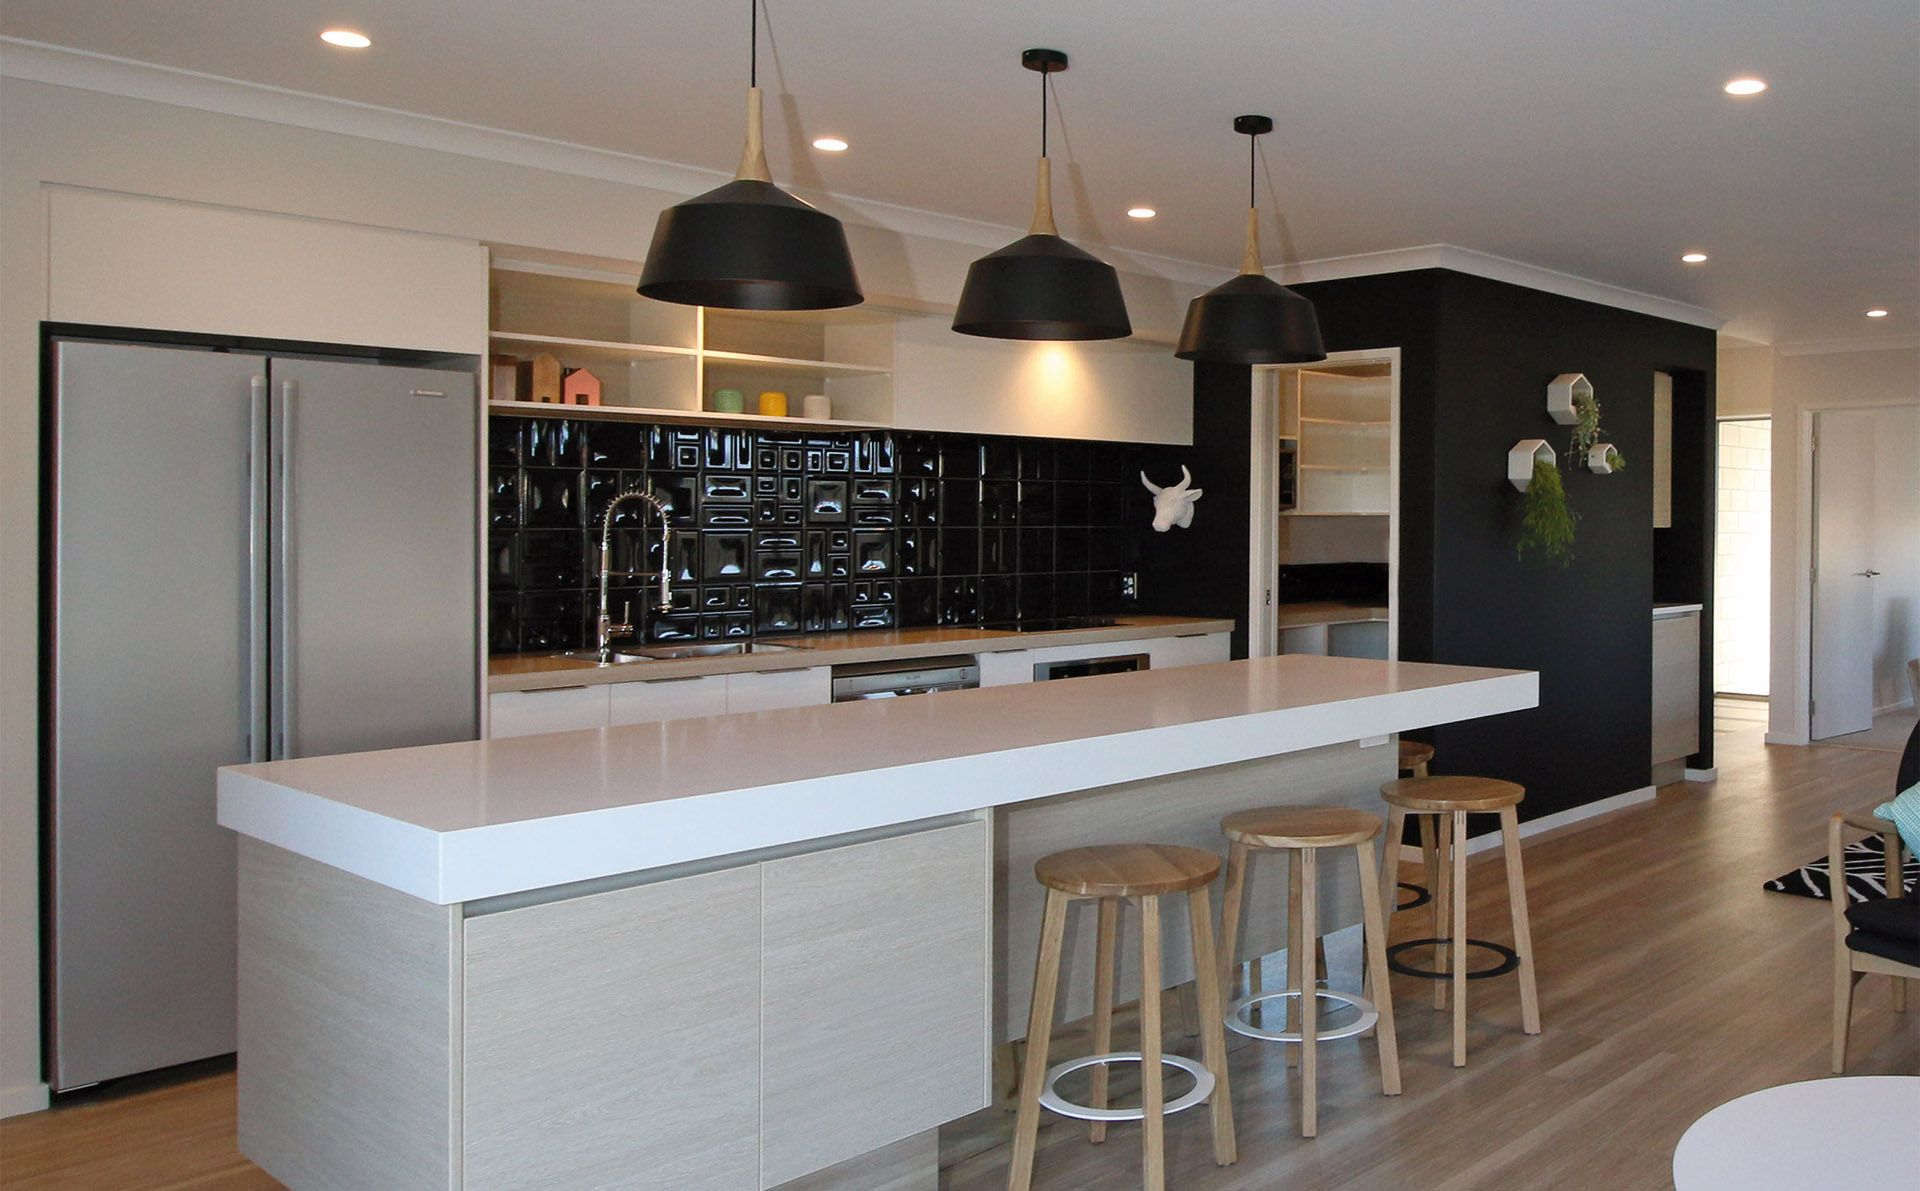 Modern mix in this showhome kitchen papamoa east gj gardner homes